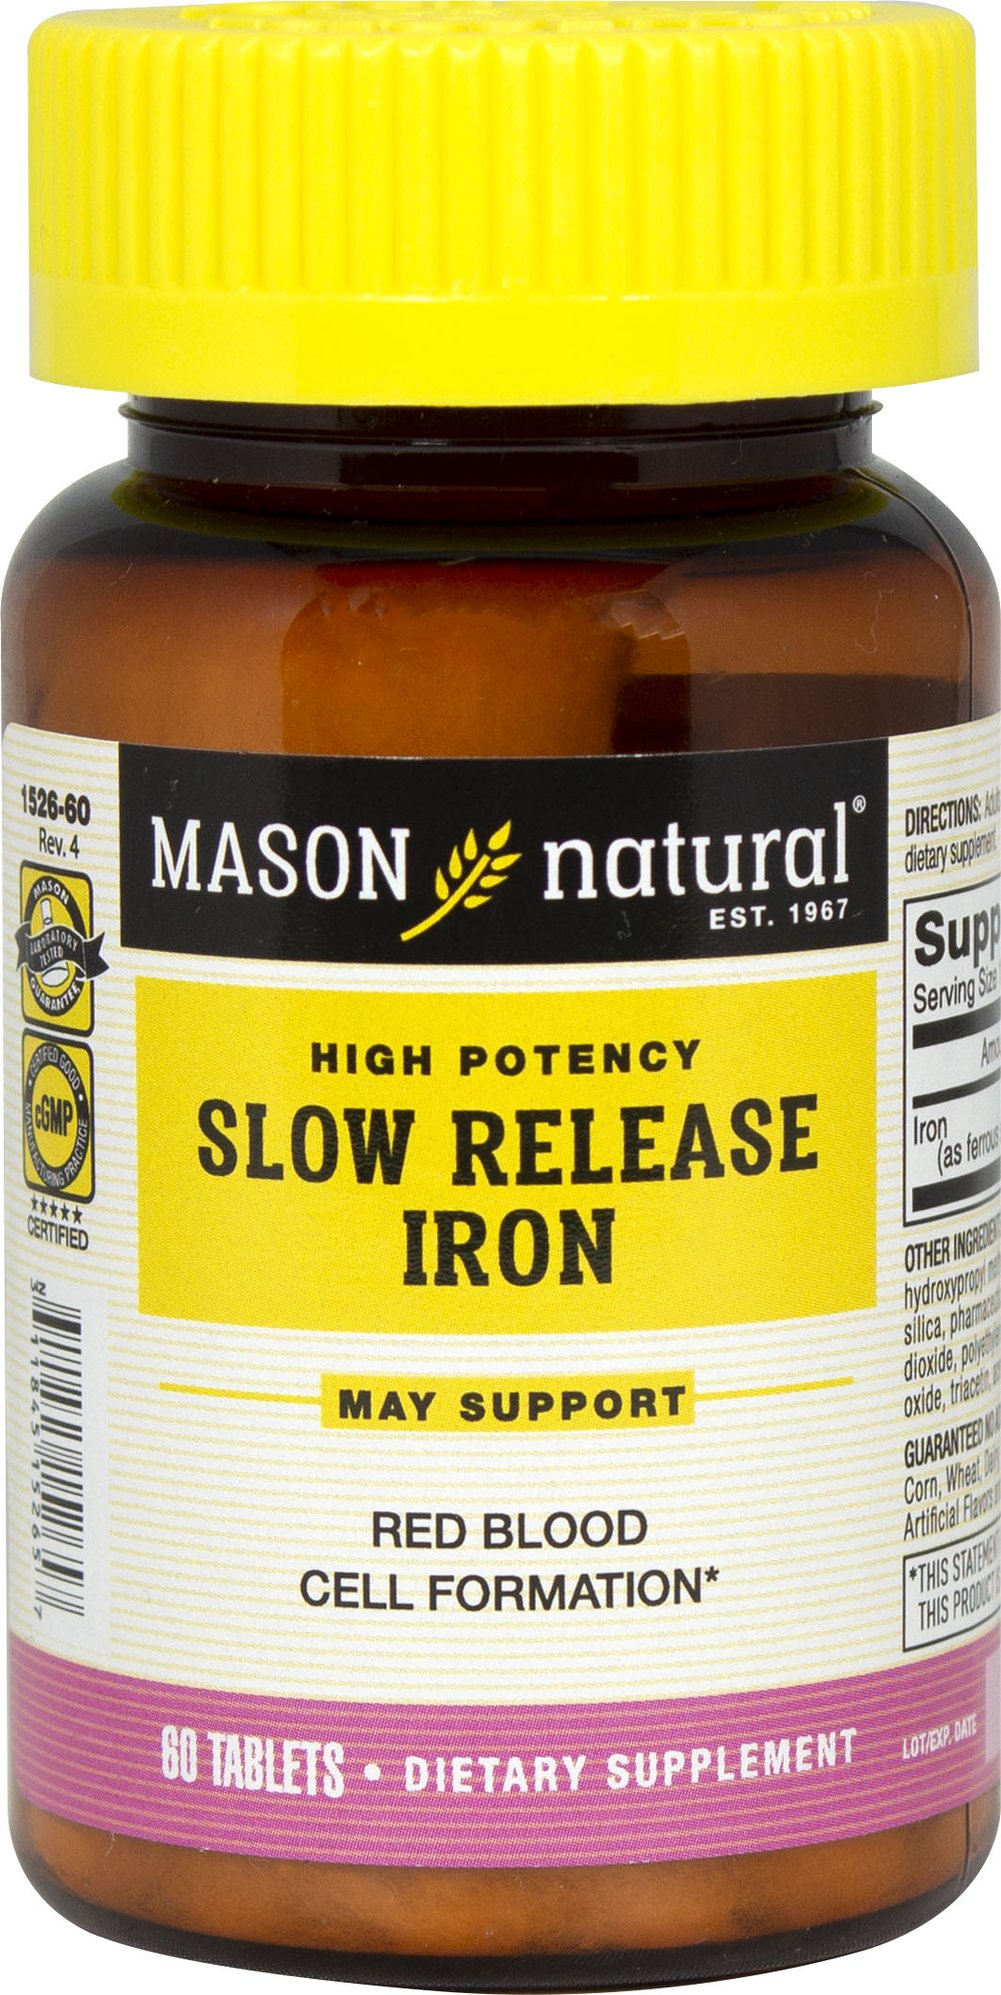 Iron 50 mg Slow Release <p><strong>From the Manufacturer's Label:</strong></p><p>Slow Release Iron 50 mg is manufactured by Mason Naturals.</p> 60 Tablets 50 mg $4.99